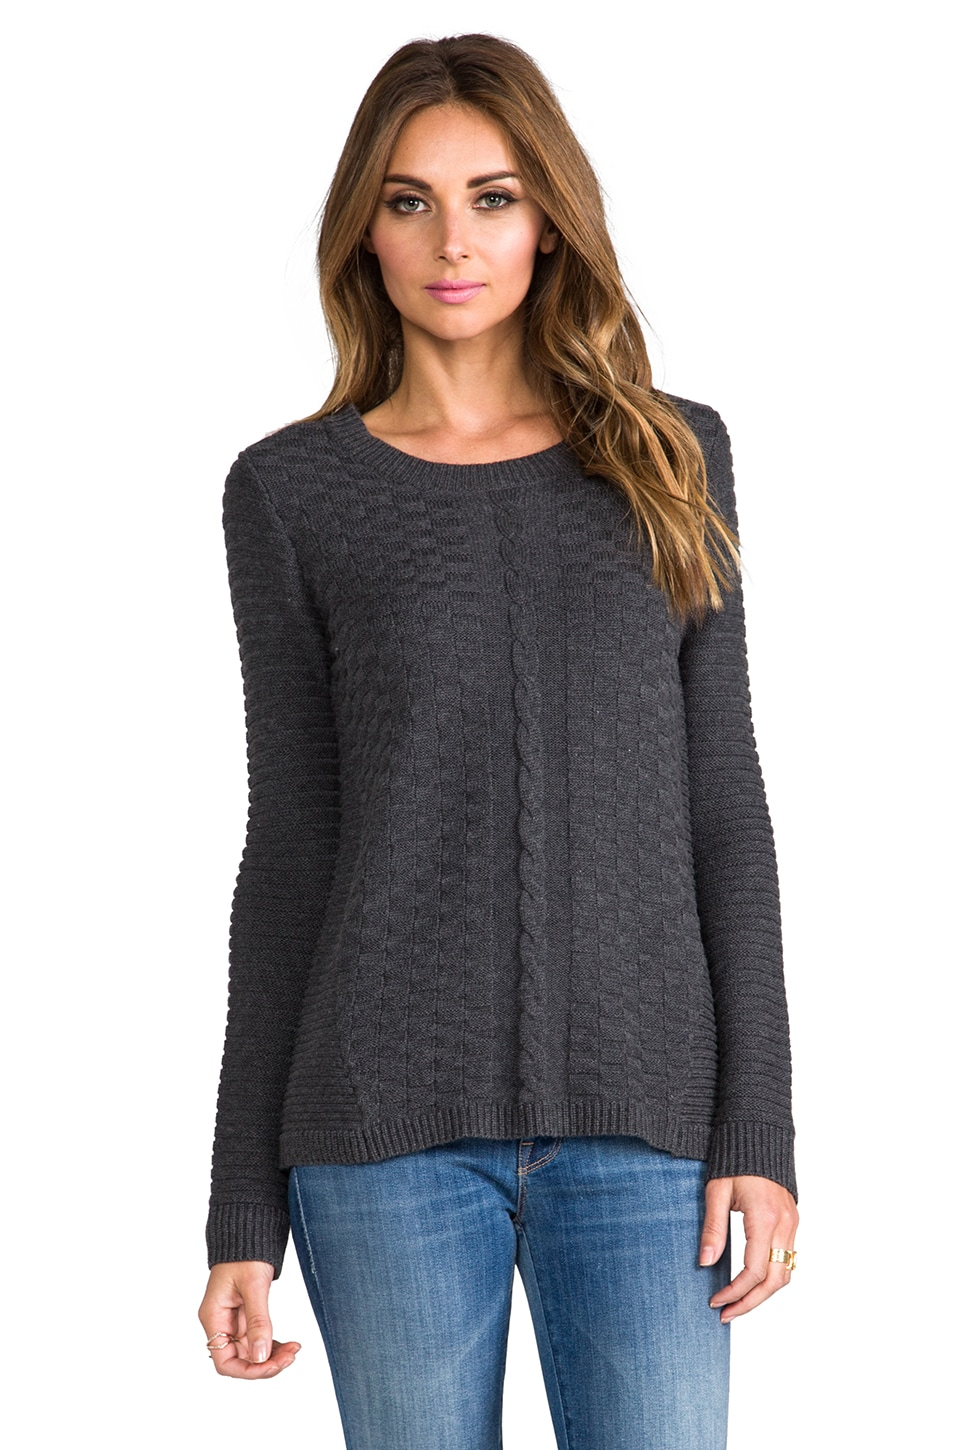 Vintageous Attitude Sweater in Charcoal